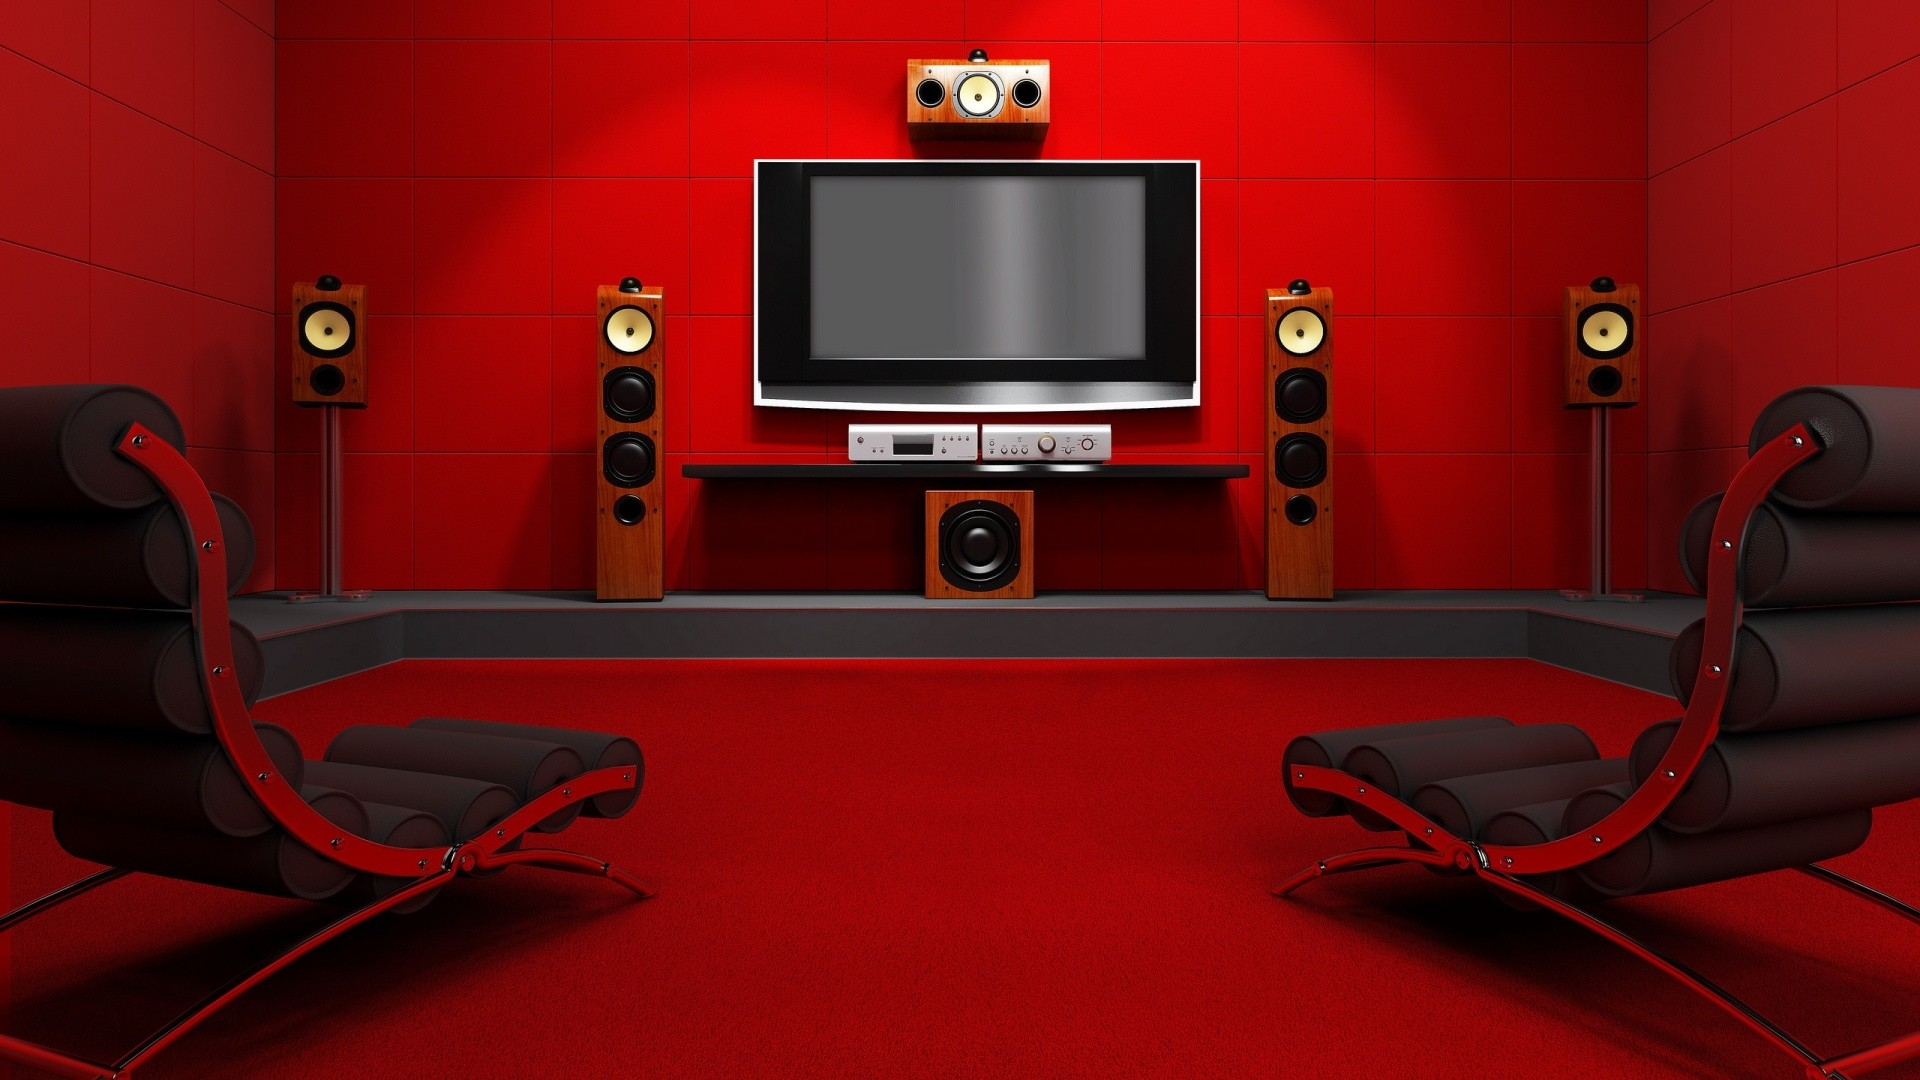 Home cinema wallpaper